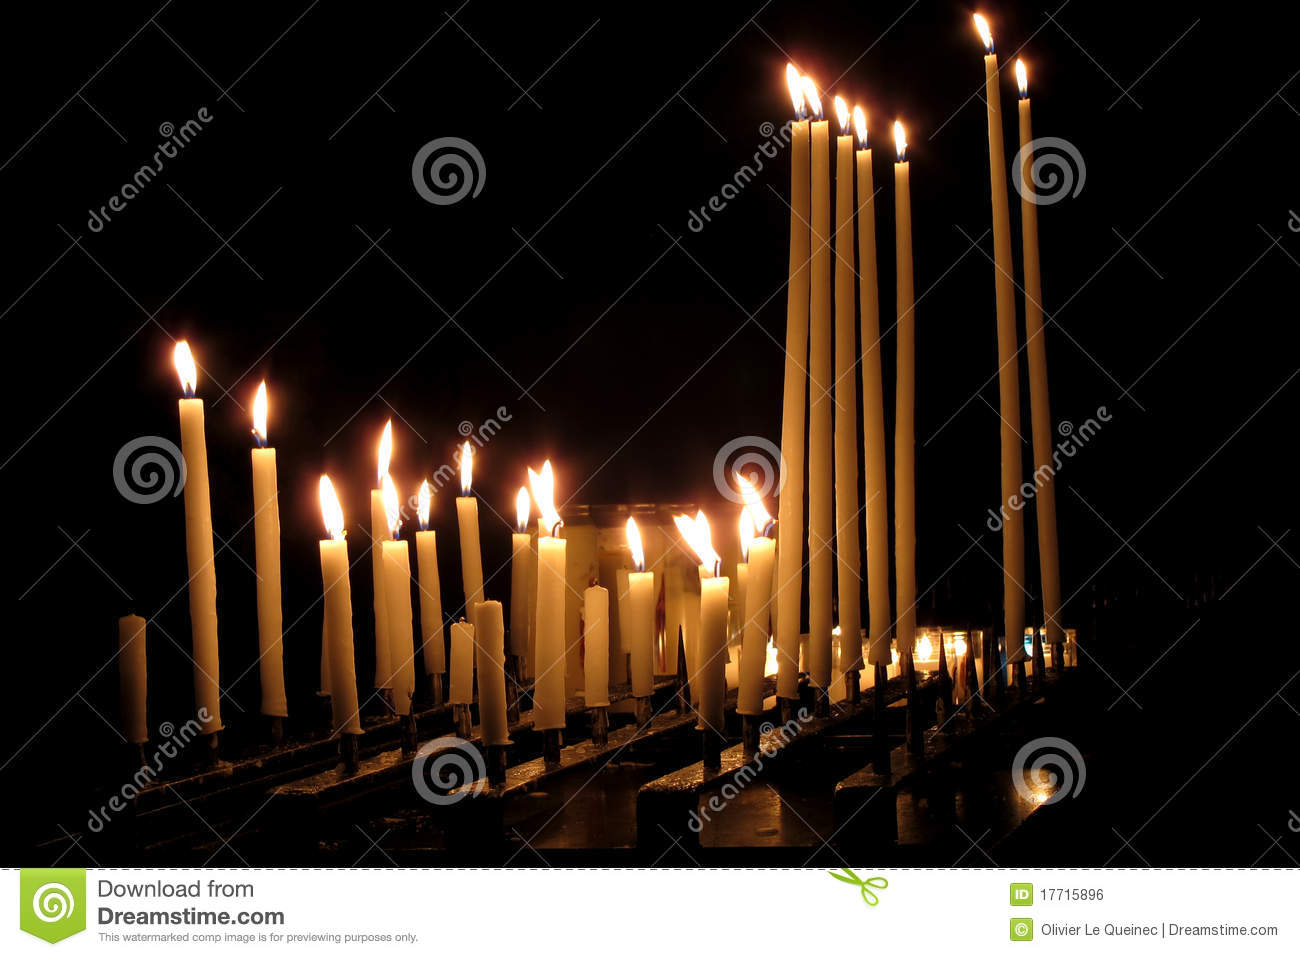 Religious Candles Burning in a Dark Church